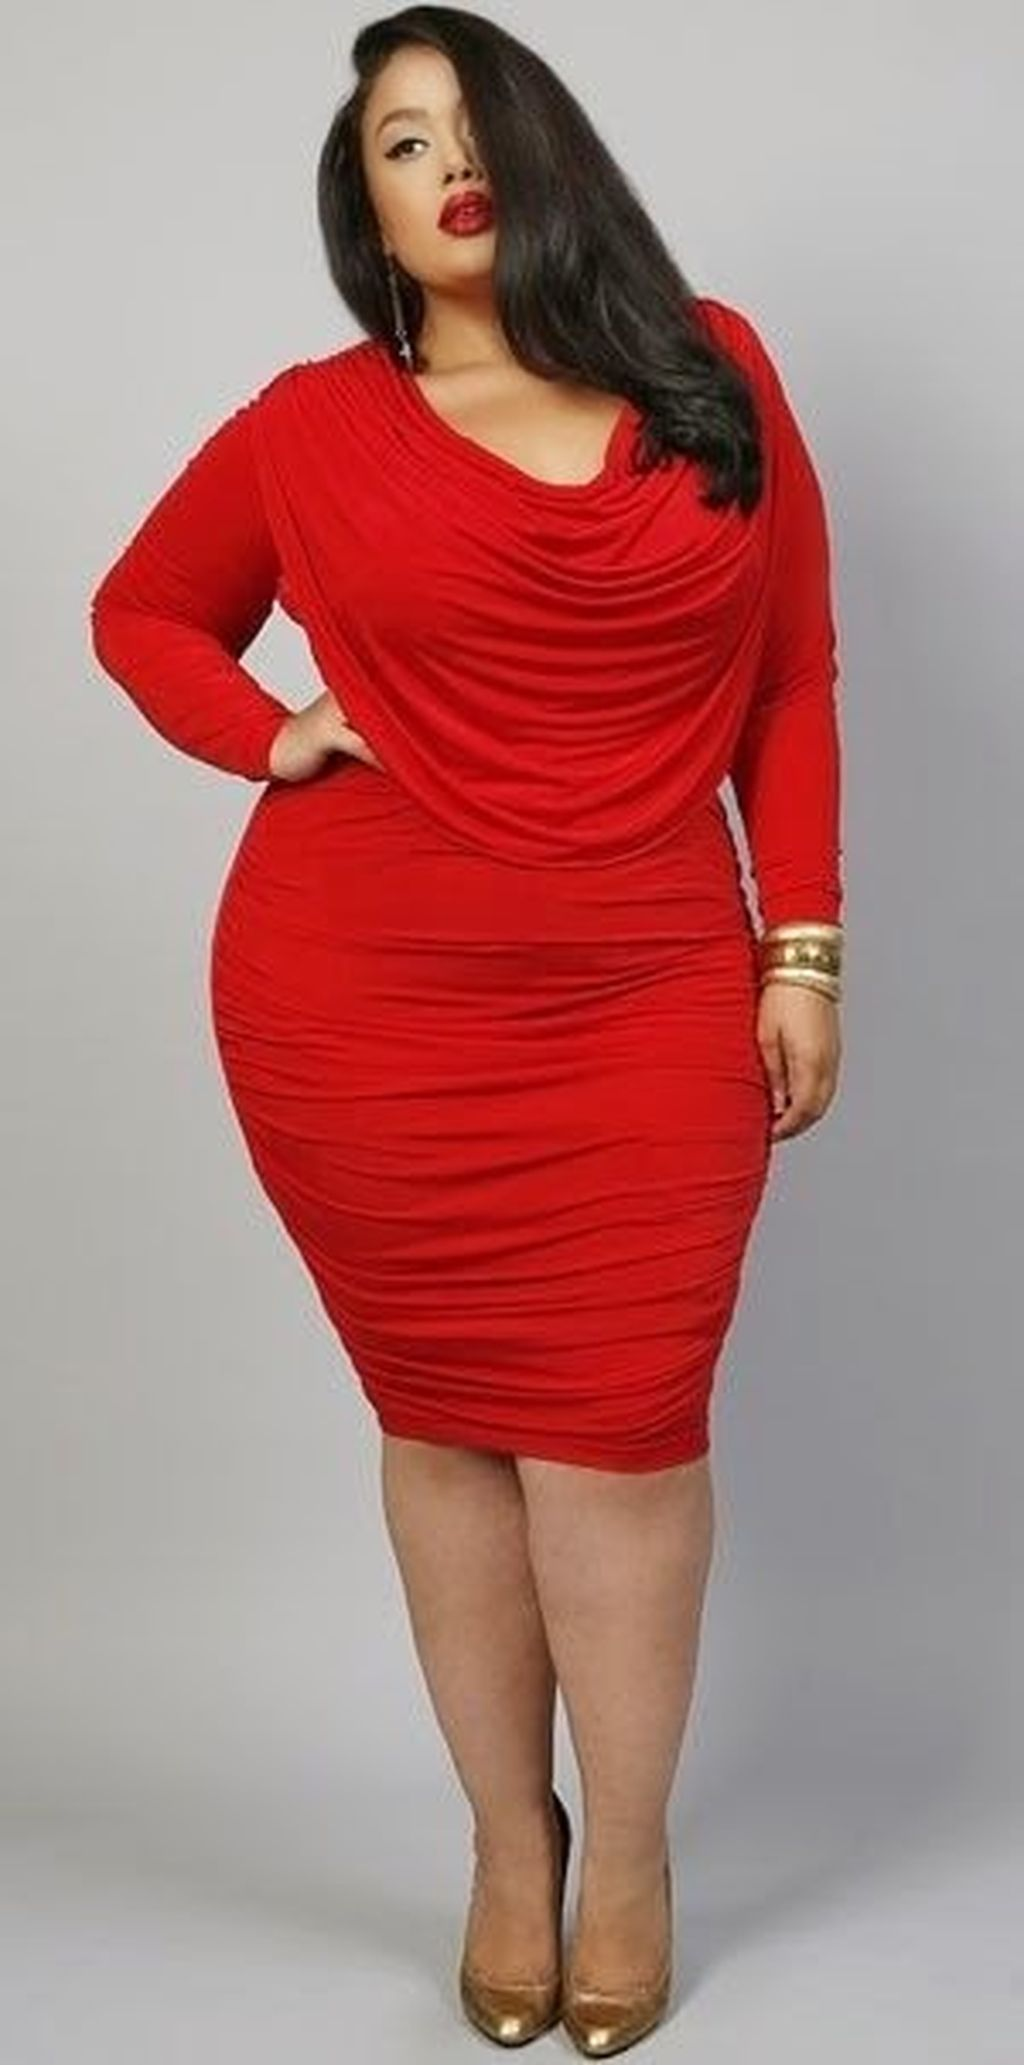 44 Adorable Plus Size Dress Ideas For Valentines Day Outfits